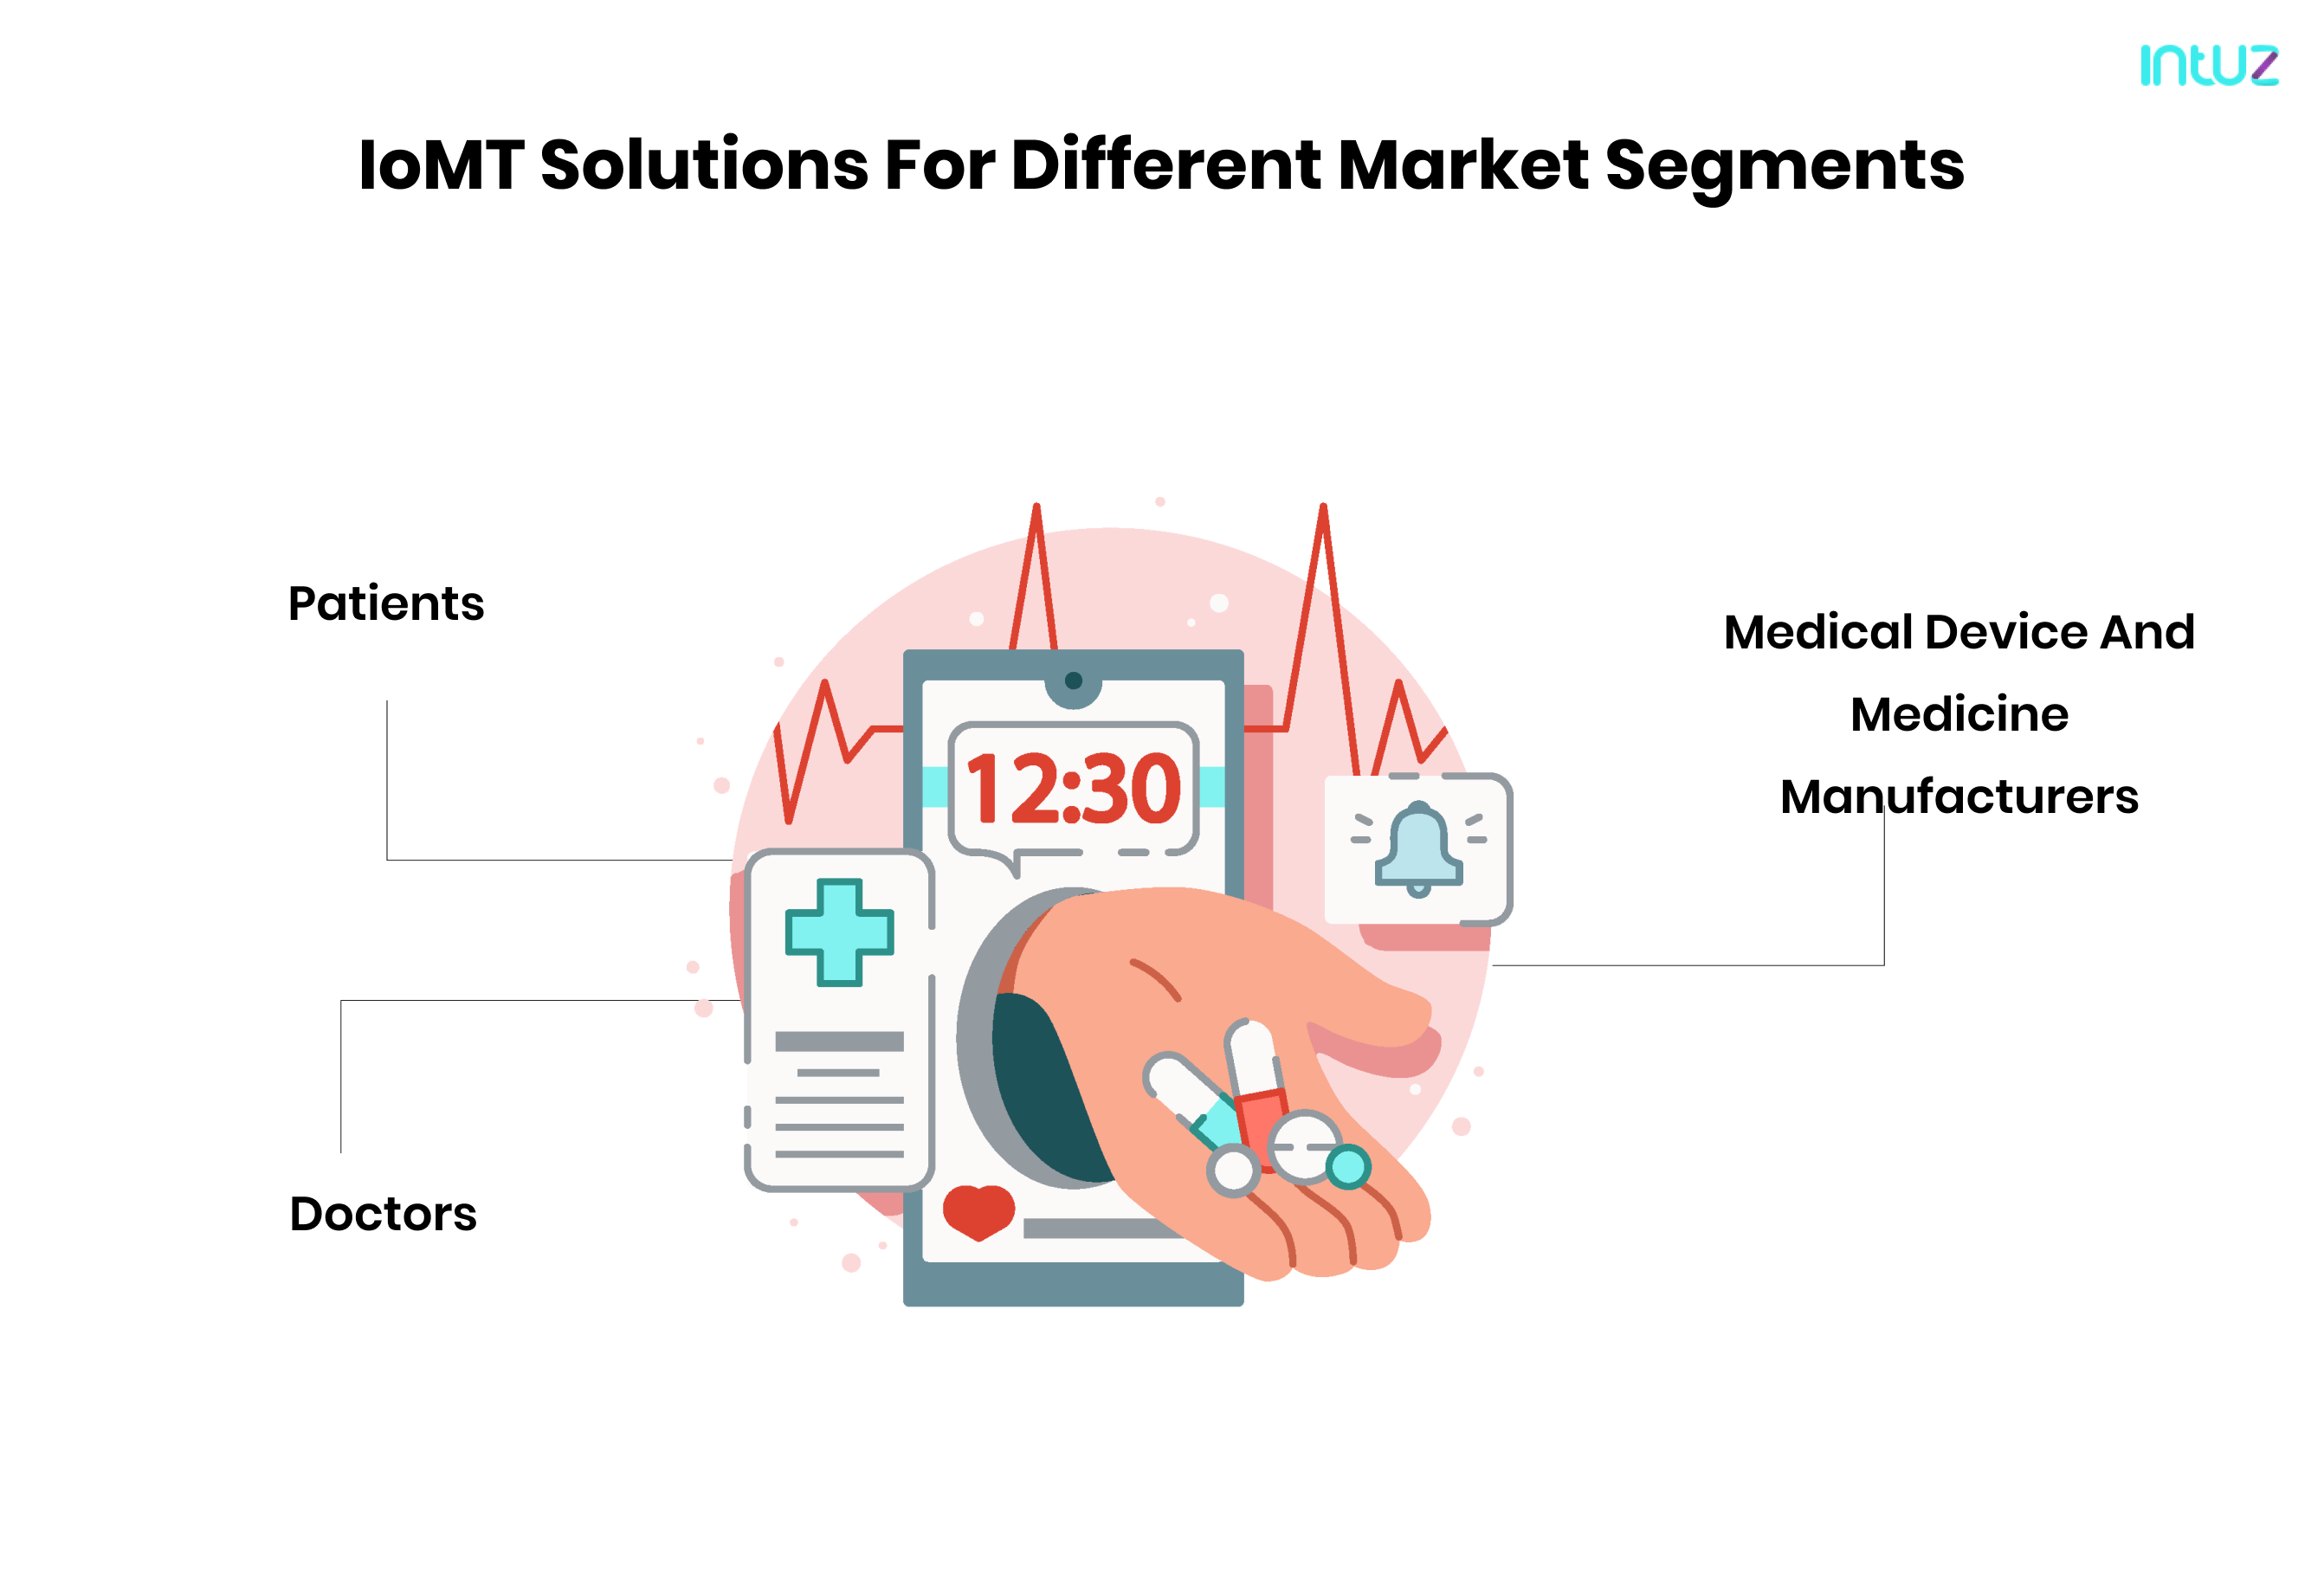 IOMT solutions